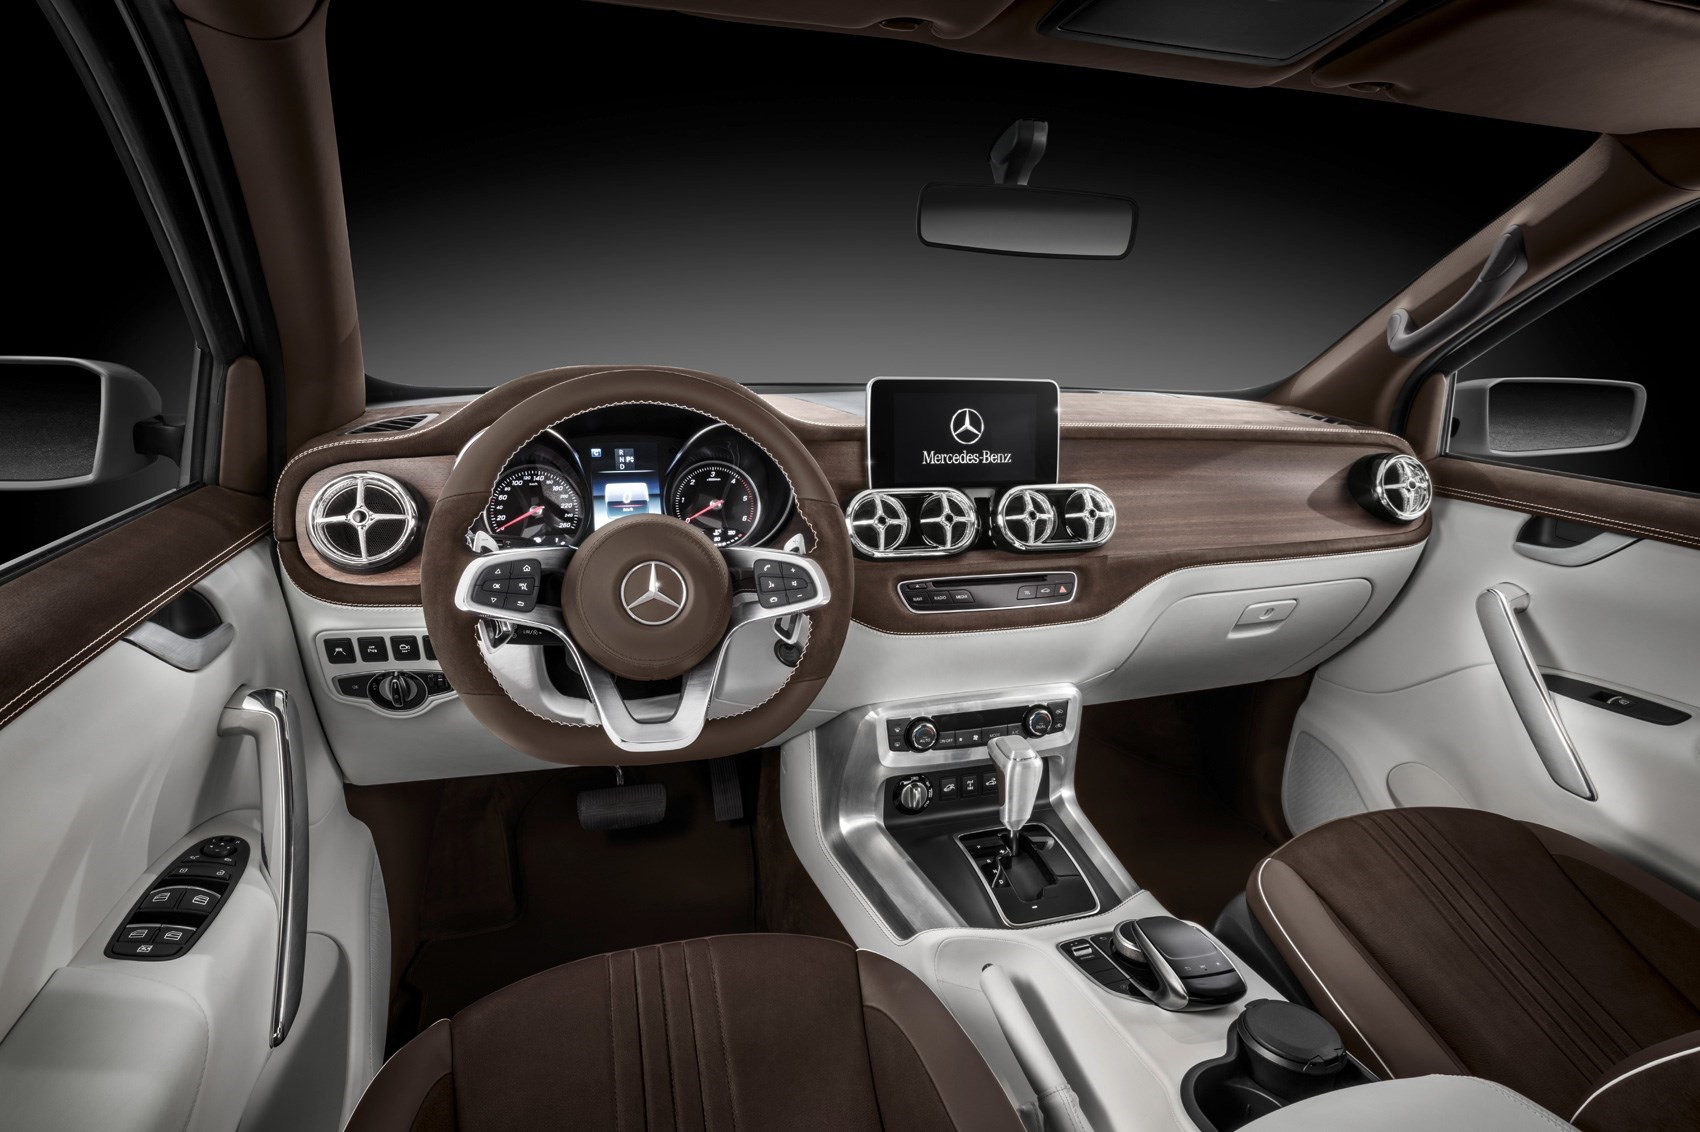 class hero benz is much how dr luxury mercedes coupe mbcan s en a vehicles